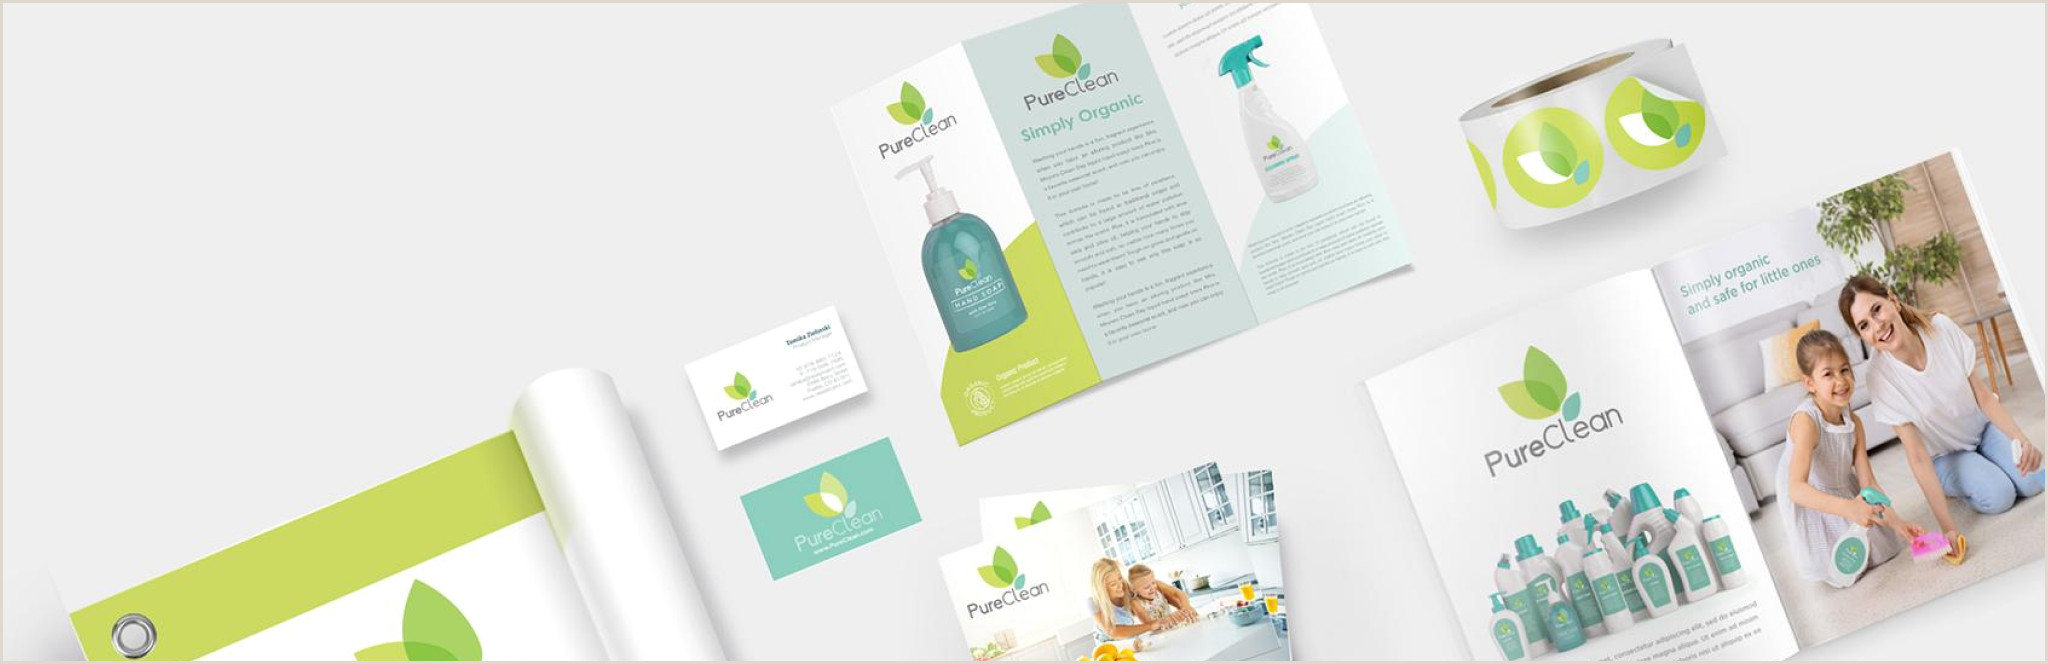 Best Business Cards For Marketing Printplace High Quality Line Printing Services